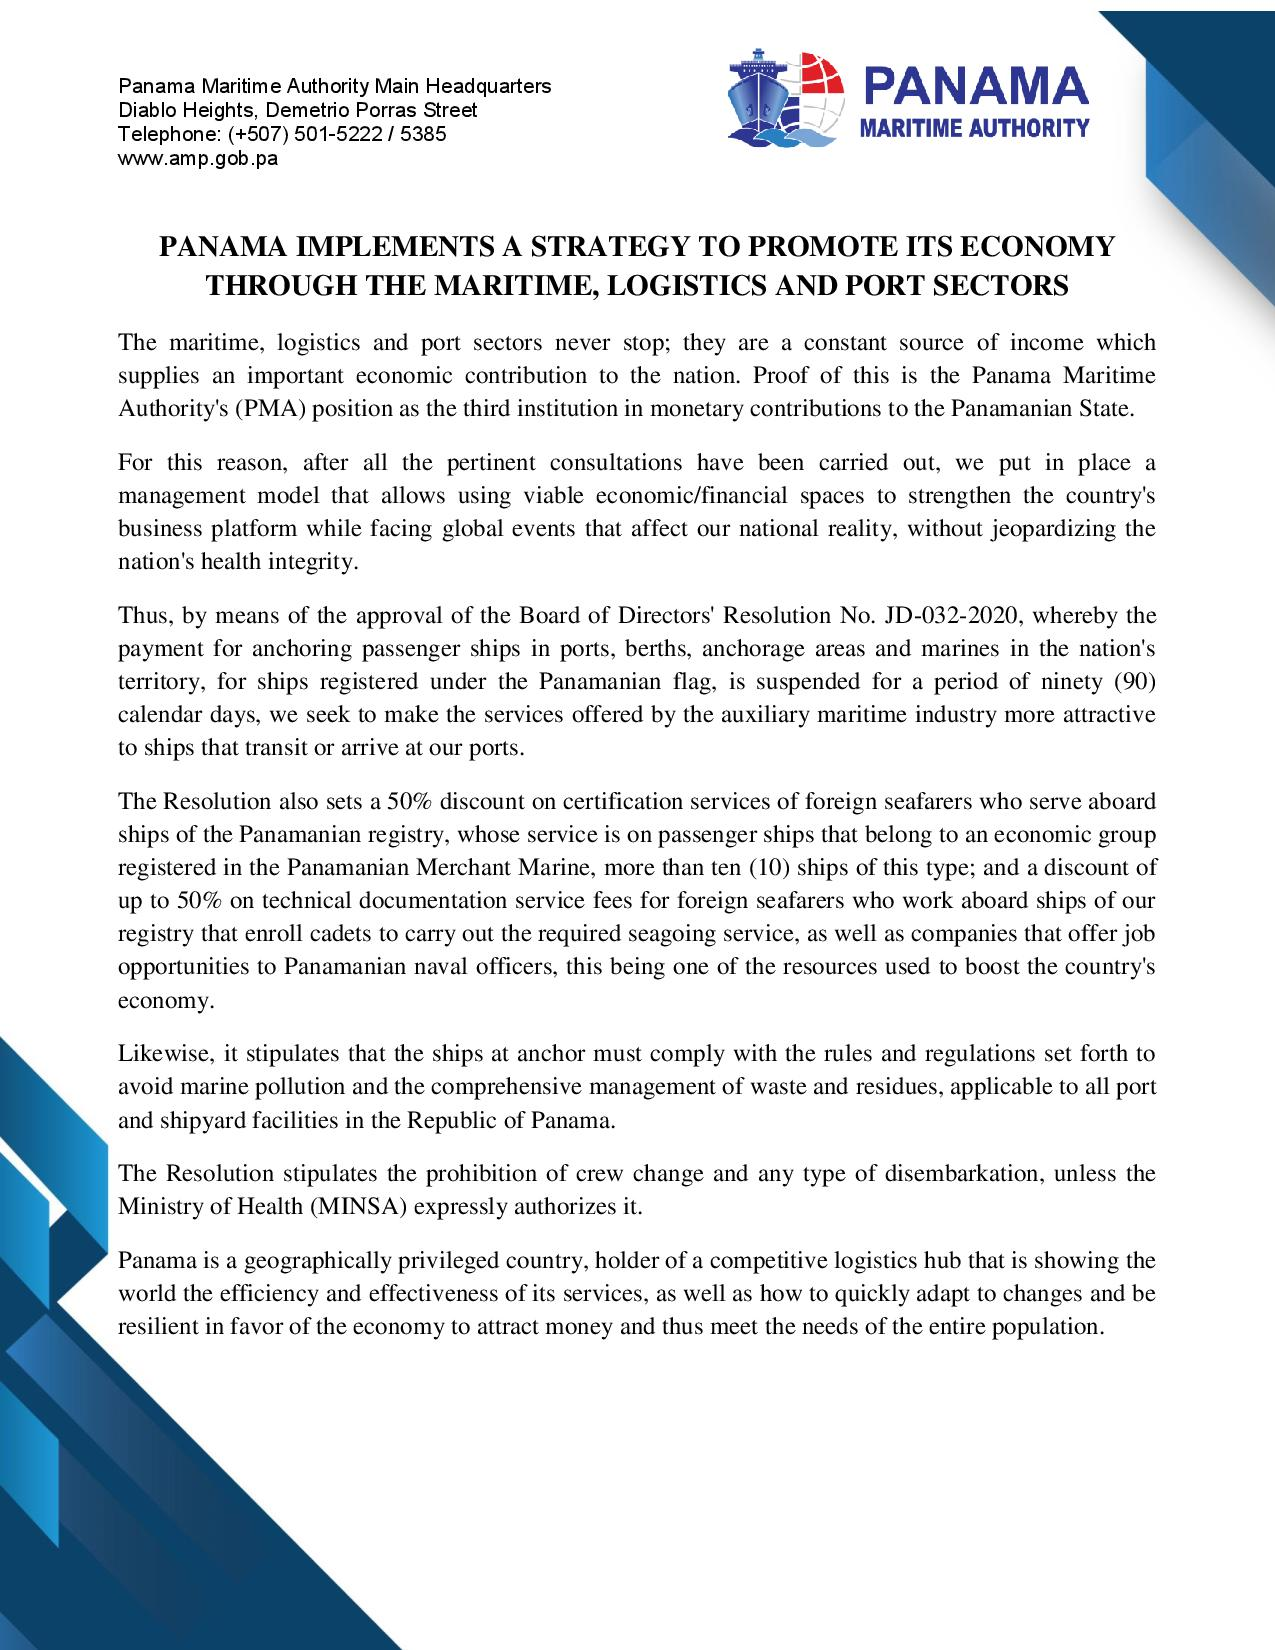 PANAMA IMPLEMENTS A STRATEGY TO PROMOTE ITS ECONOMY THROUGH THE MARITIME, LOGISTICS AND PORT SECTORS-page-001